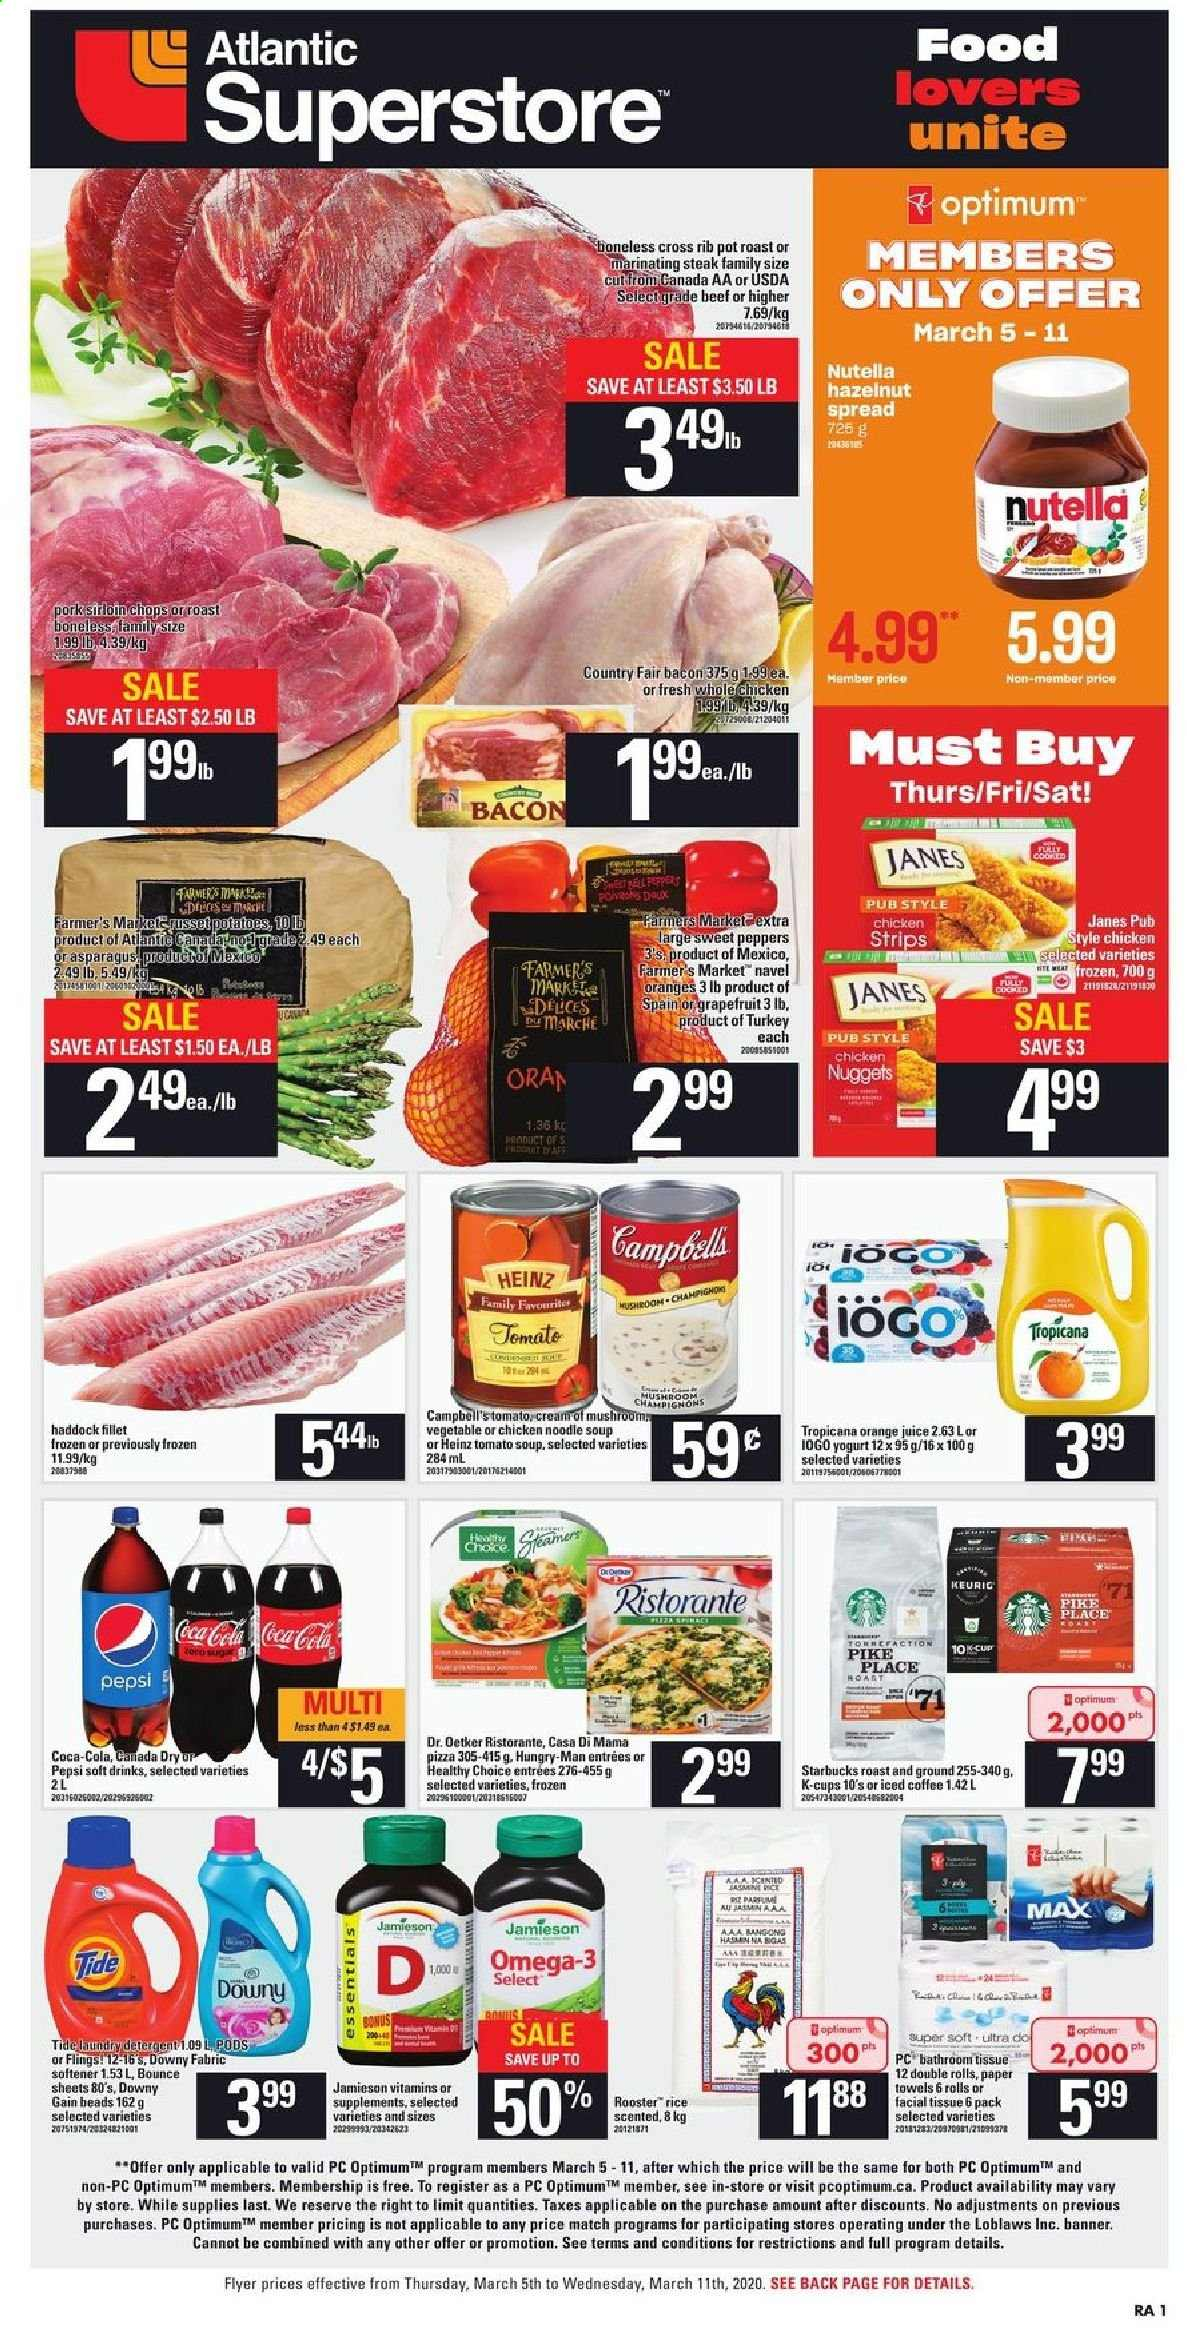 Atlantic Superstore Flyer  - March 05, 2020 - March 11, 2020. Page 1.